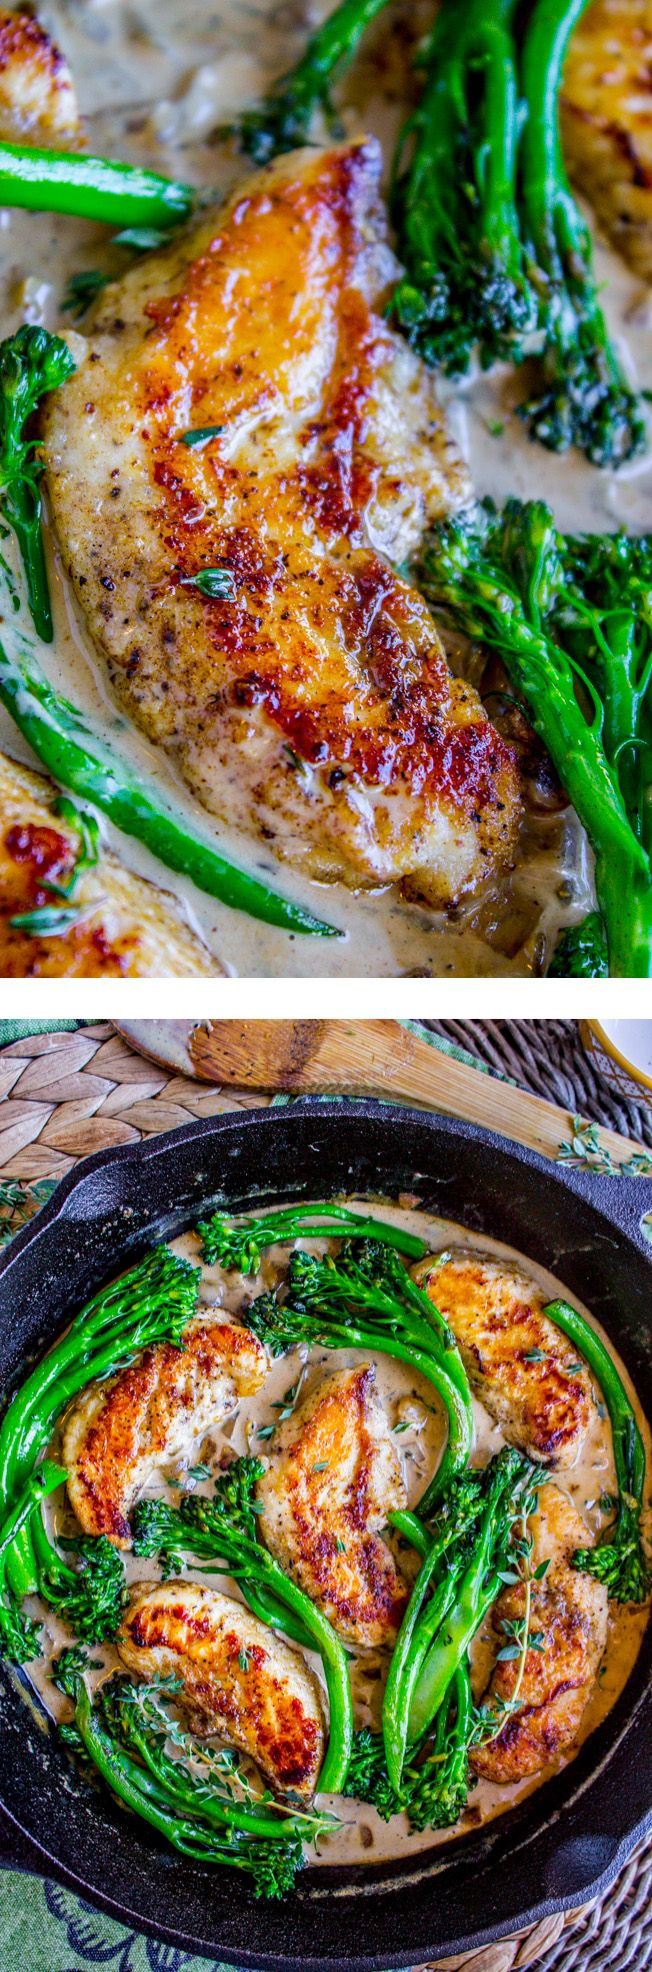 This easy pan-seared chicken is a great weeknight dinner! But it tastes restaurant quality. The creamy mustard sauce compliments the broccolini perfectly!